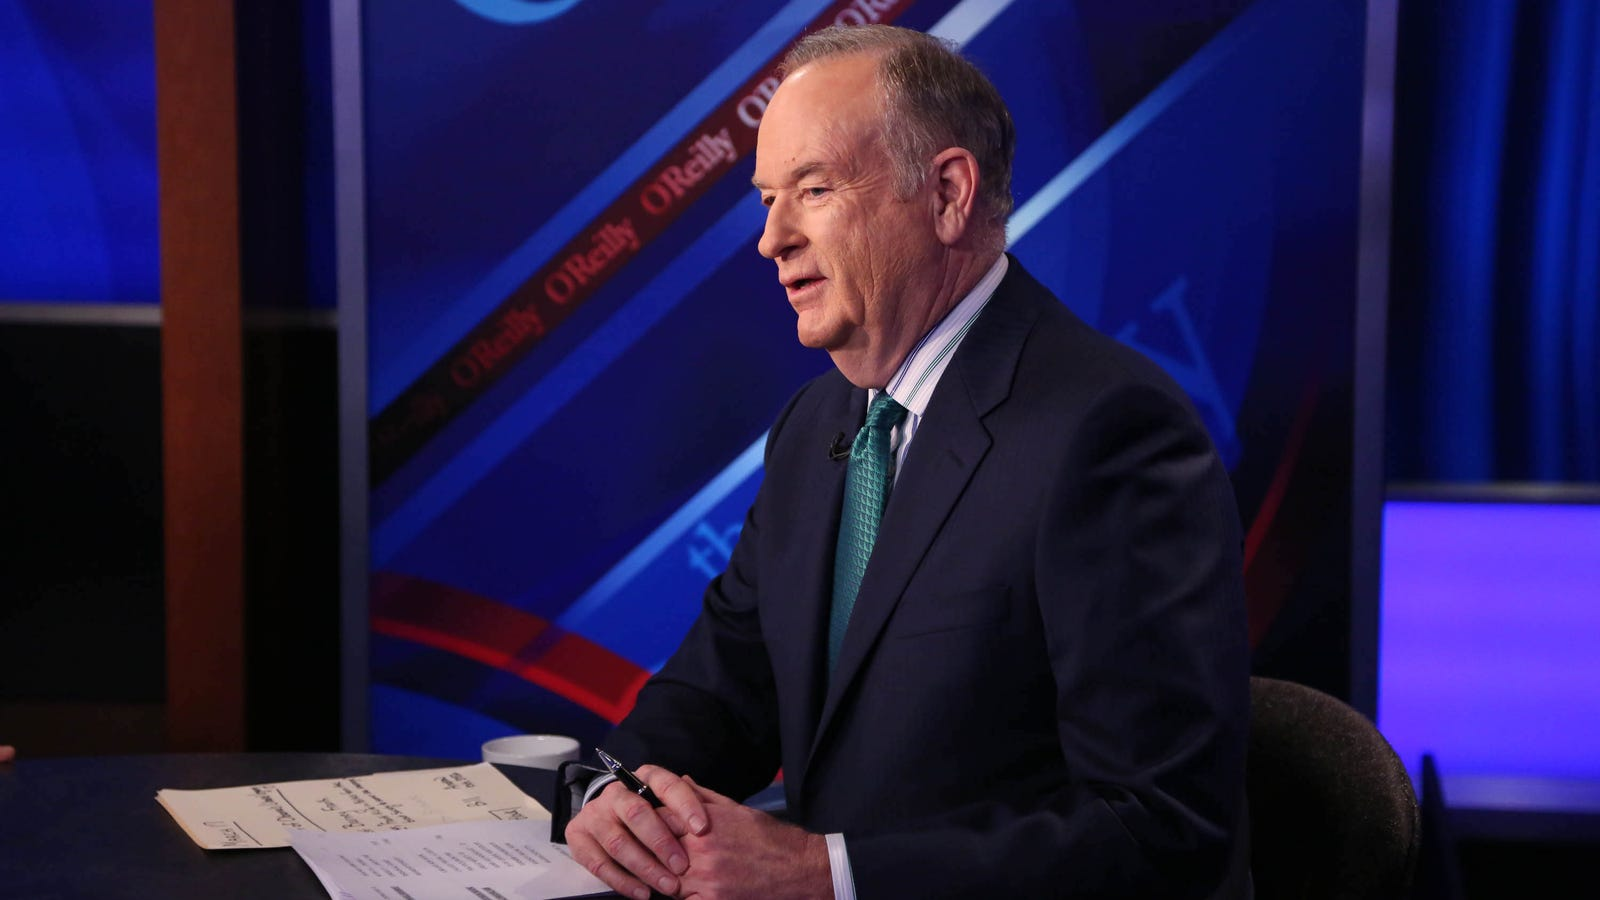 Bill O'Reilly Won't Say Why He's Suing His Ex-Wife. We're Suing to Find Out.